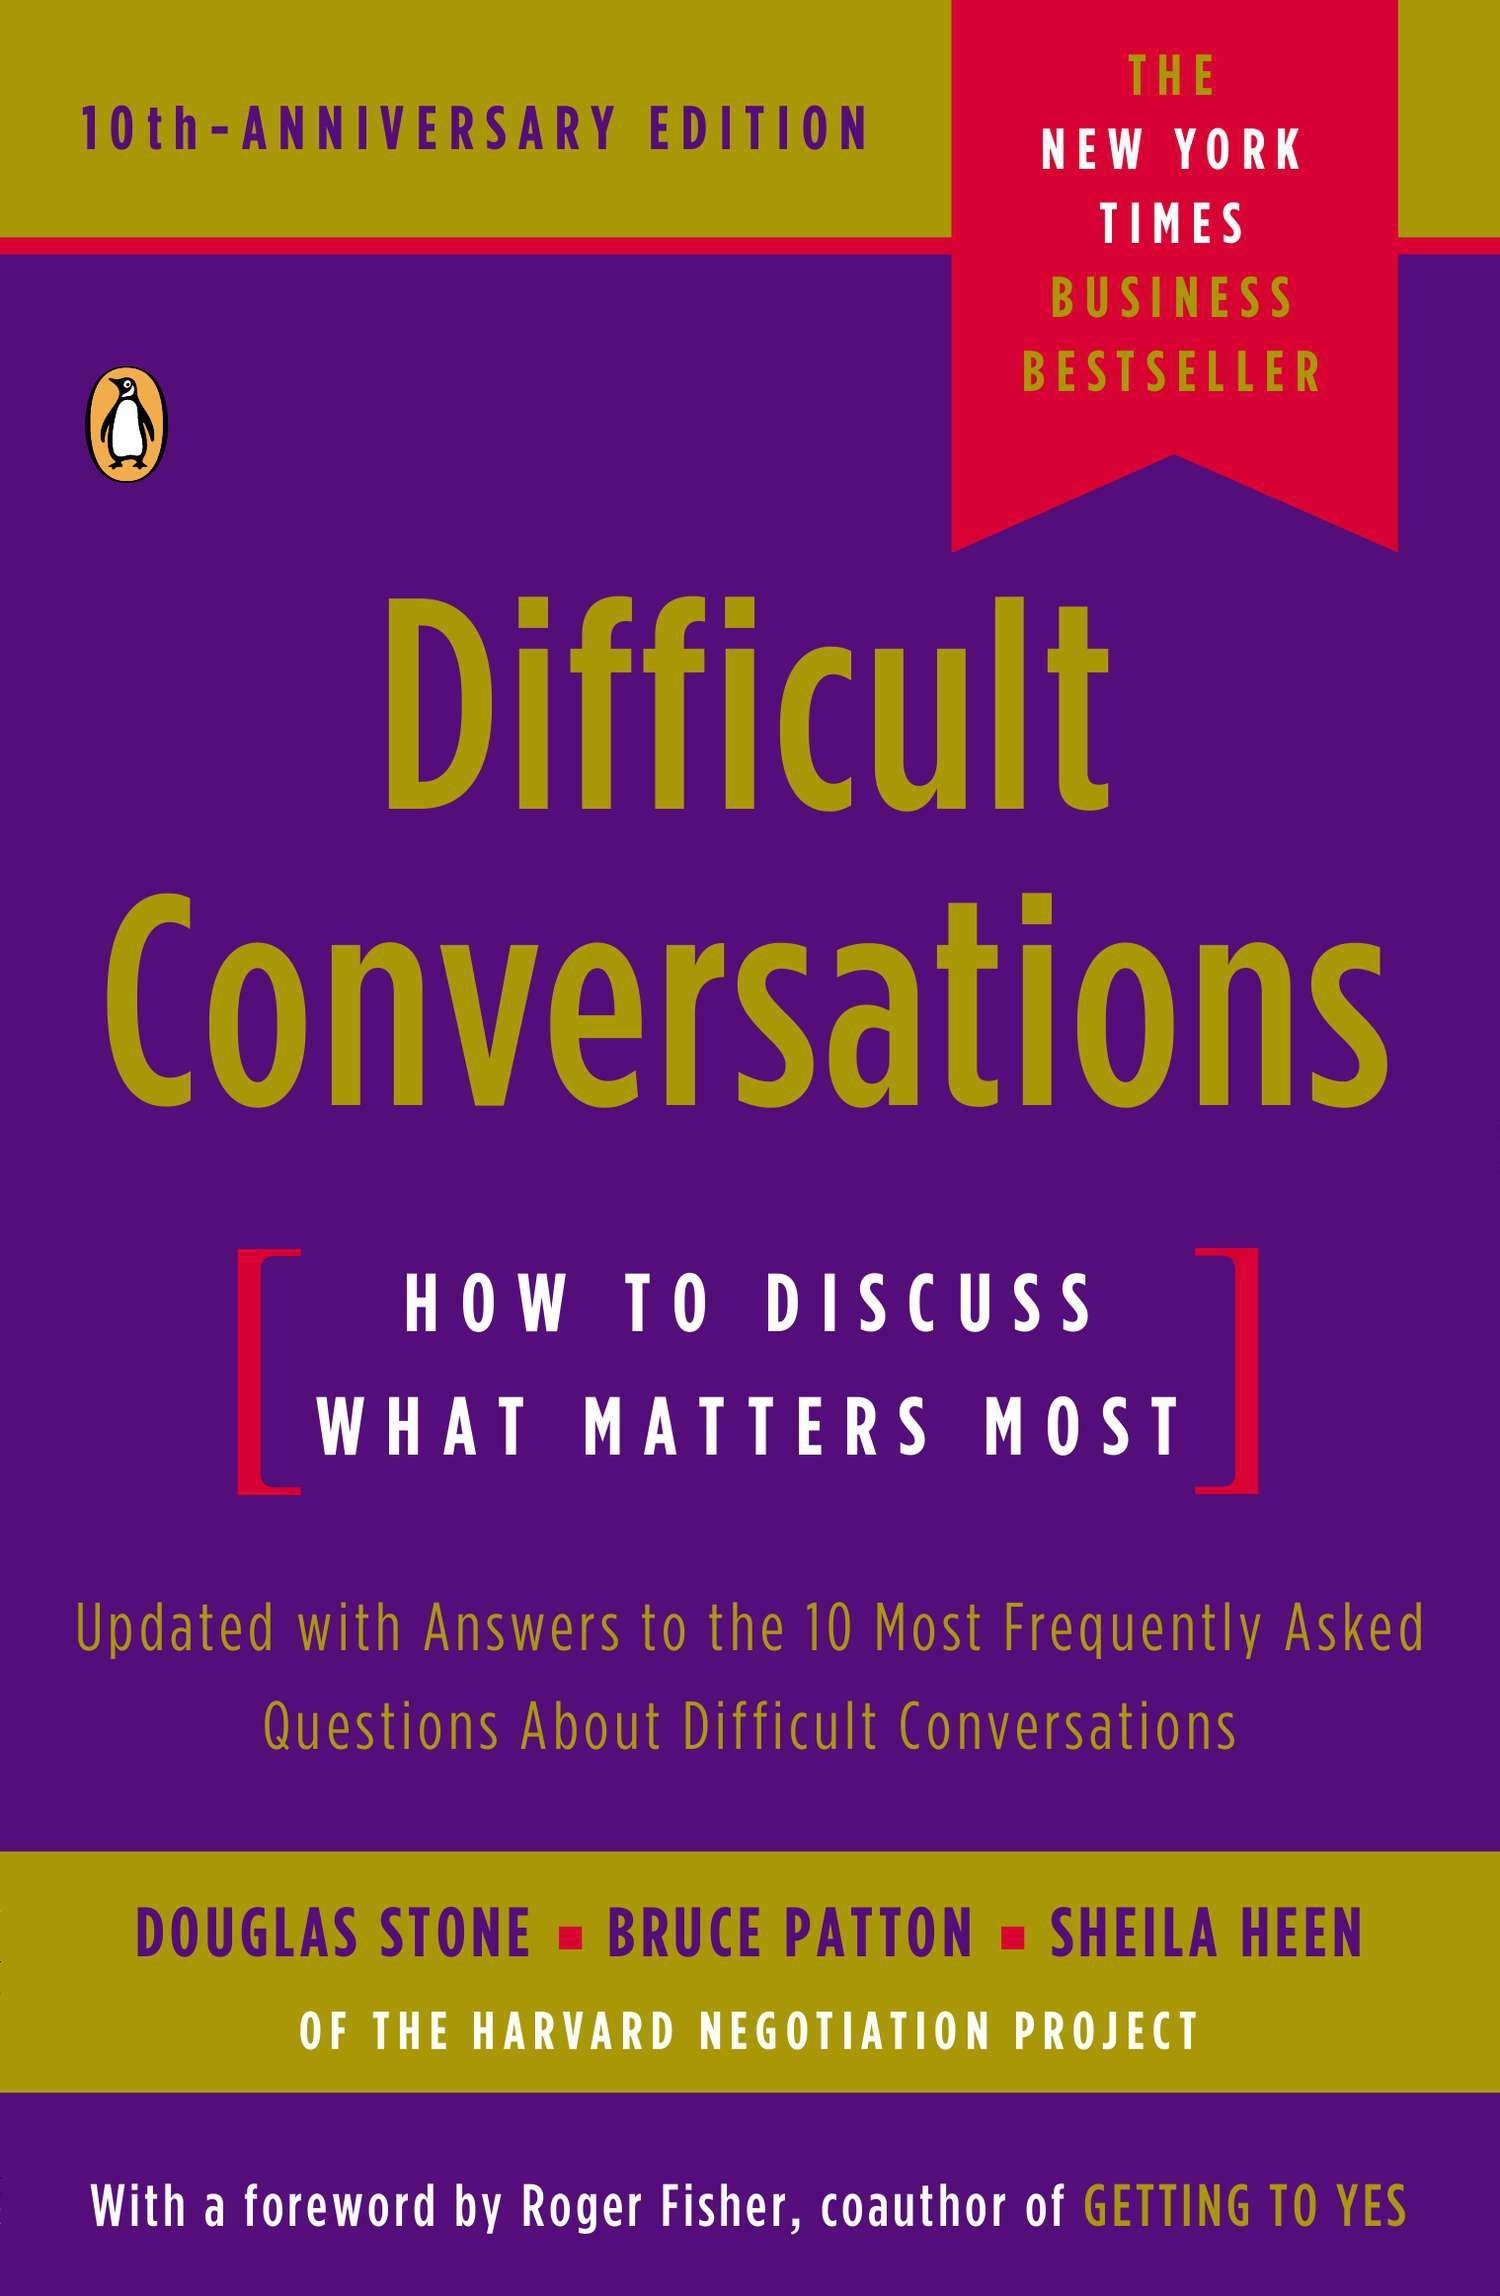 Image OfDifficult Conversations: How To Discuss What Matters Most